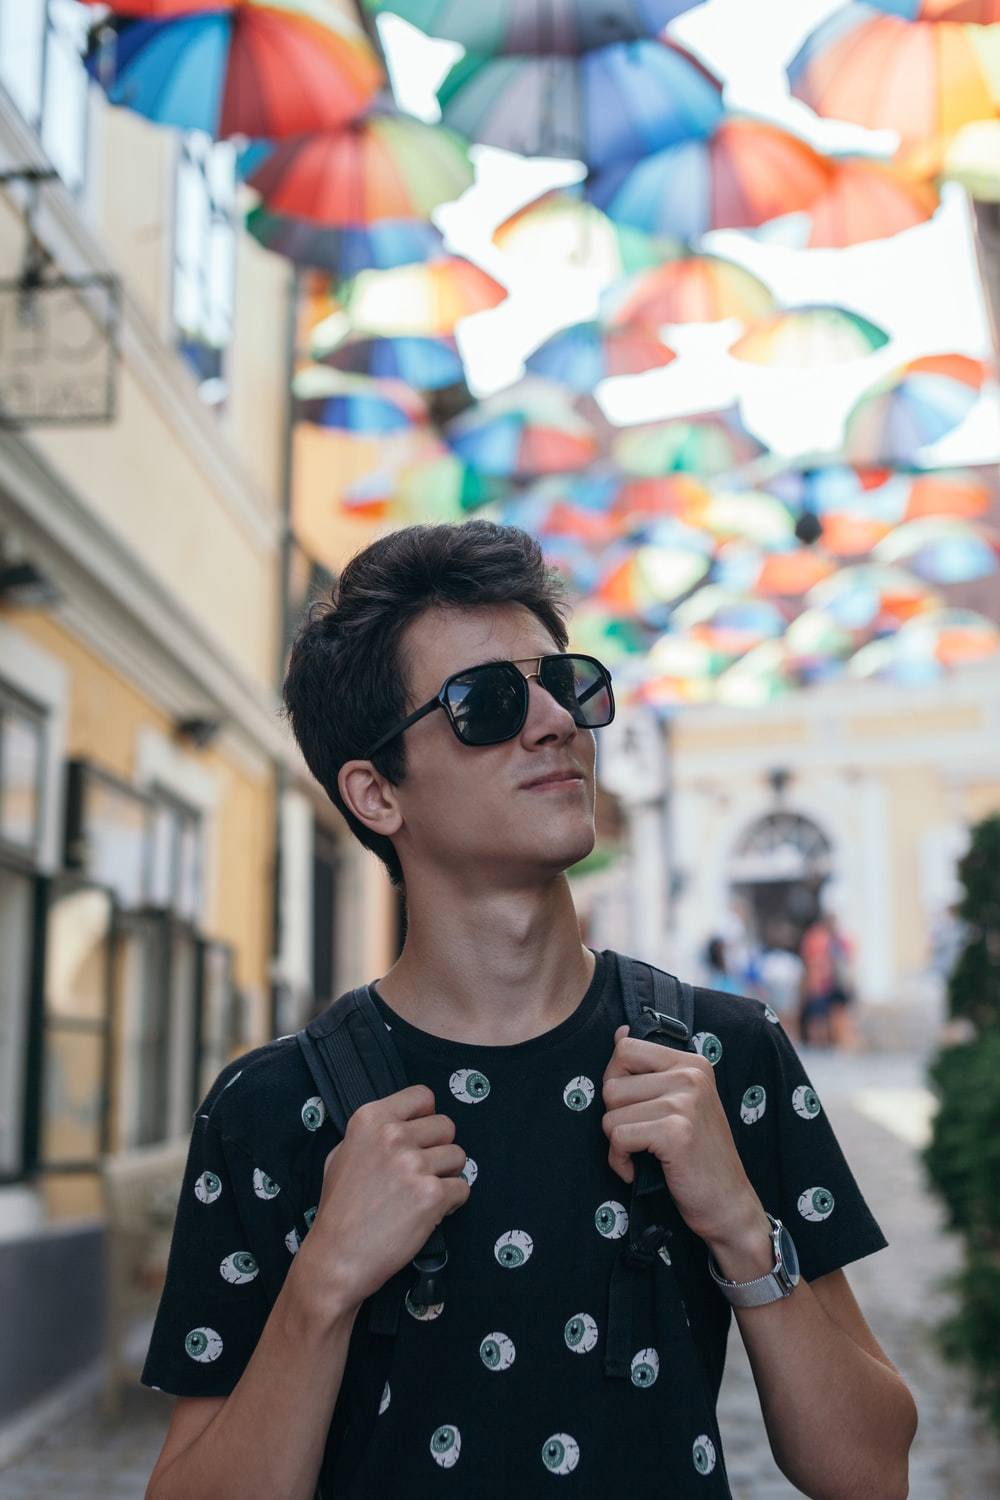 boy in black and white crew neck shirt wearing black sunglasses